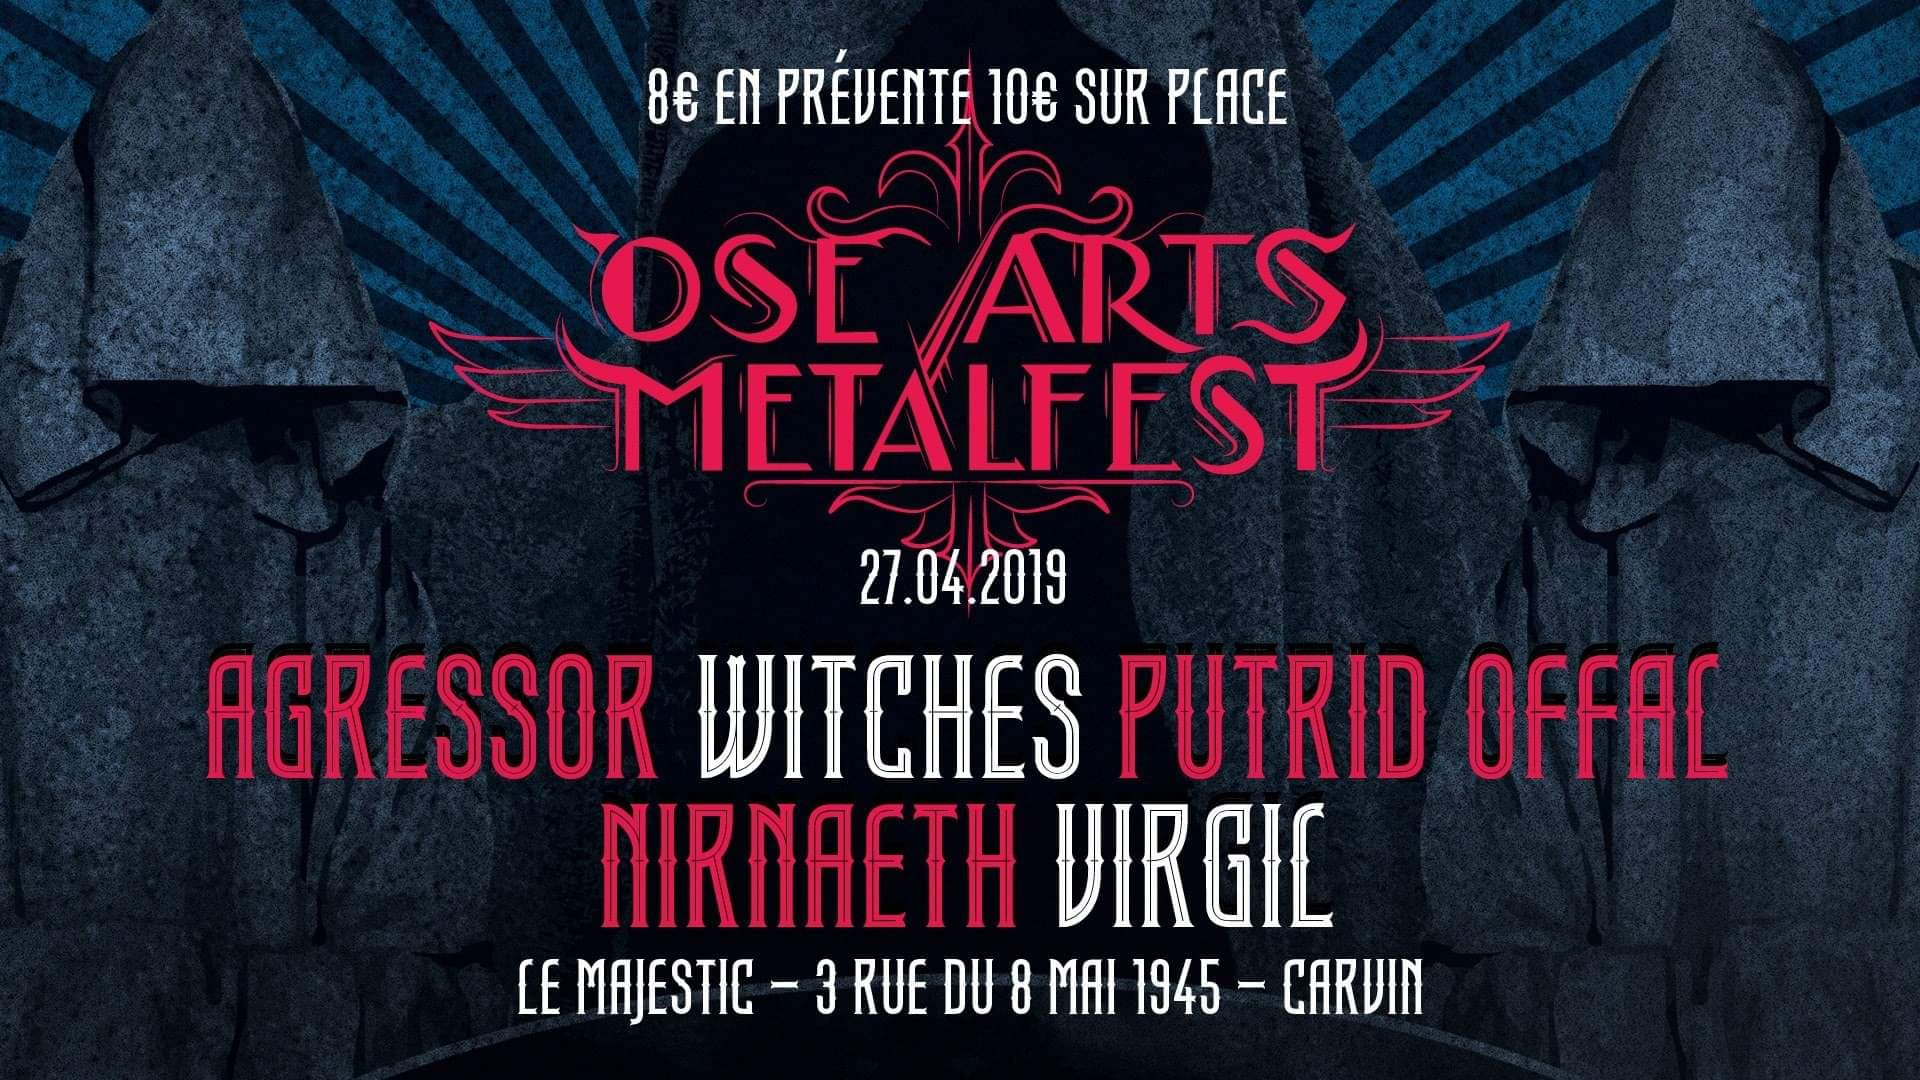 Witches flyer Agressor + Witches + Putrid Offal + Nirnaeth + Virgil @ Ose Arts Metal Fest Le Majestic Carvin (62), France